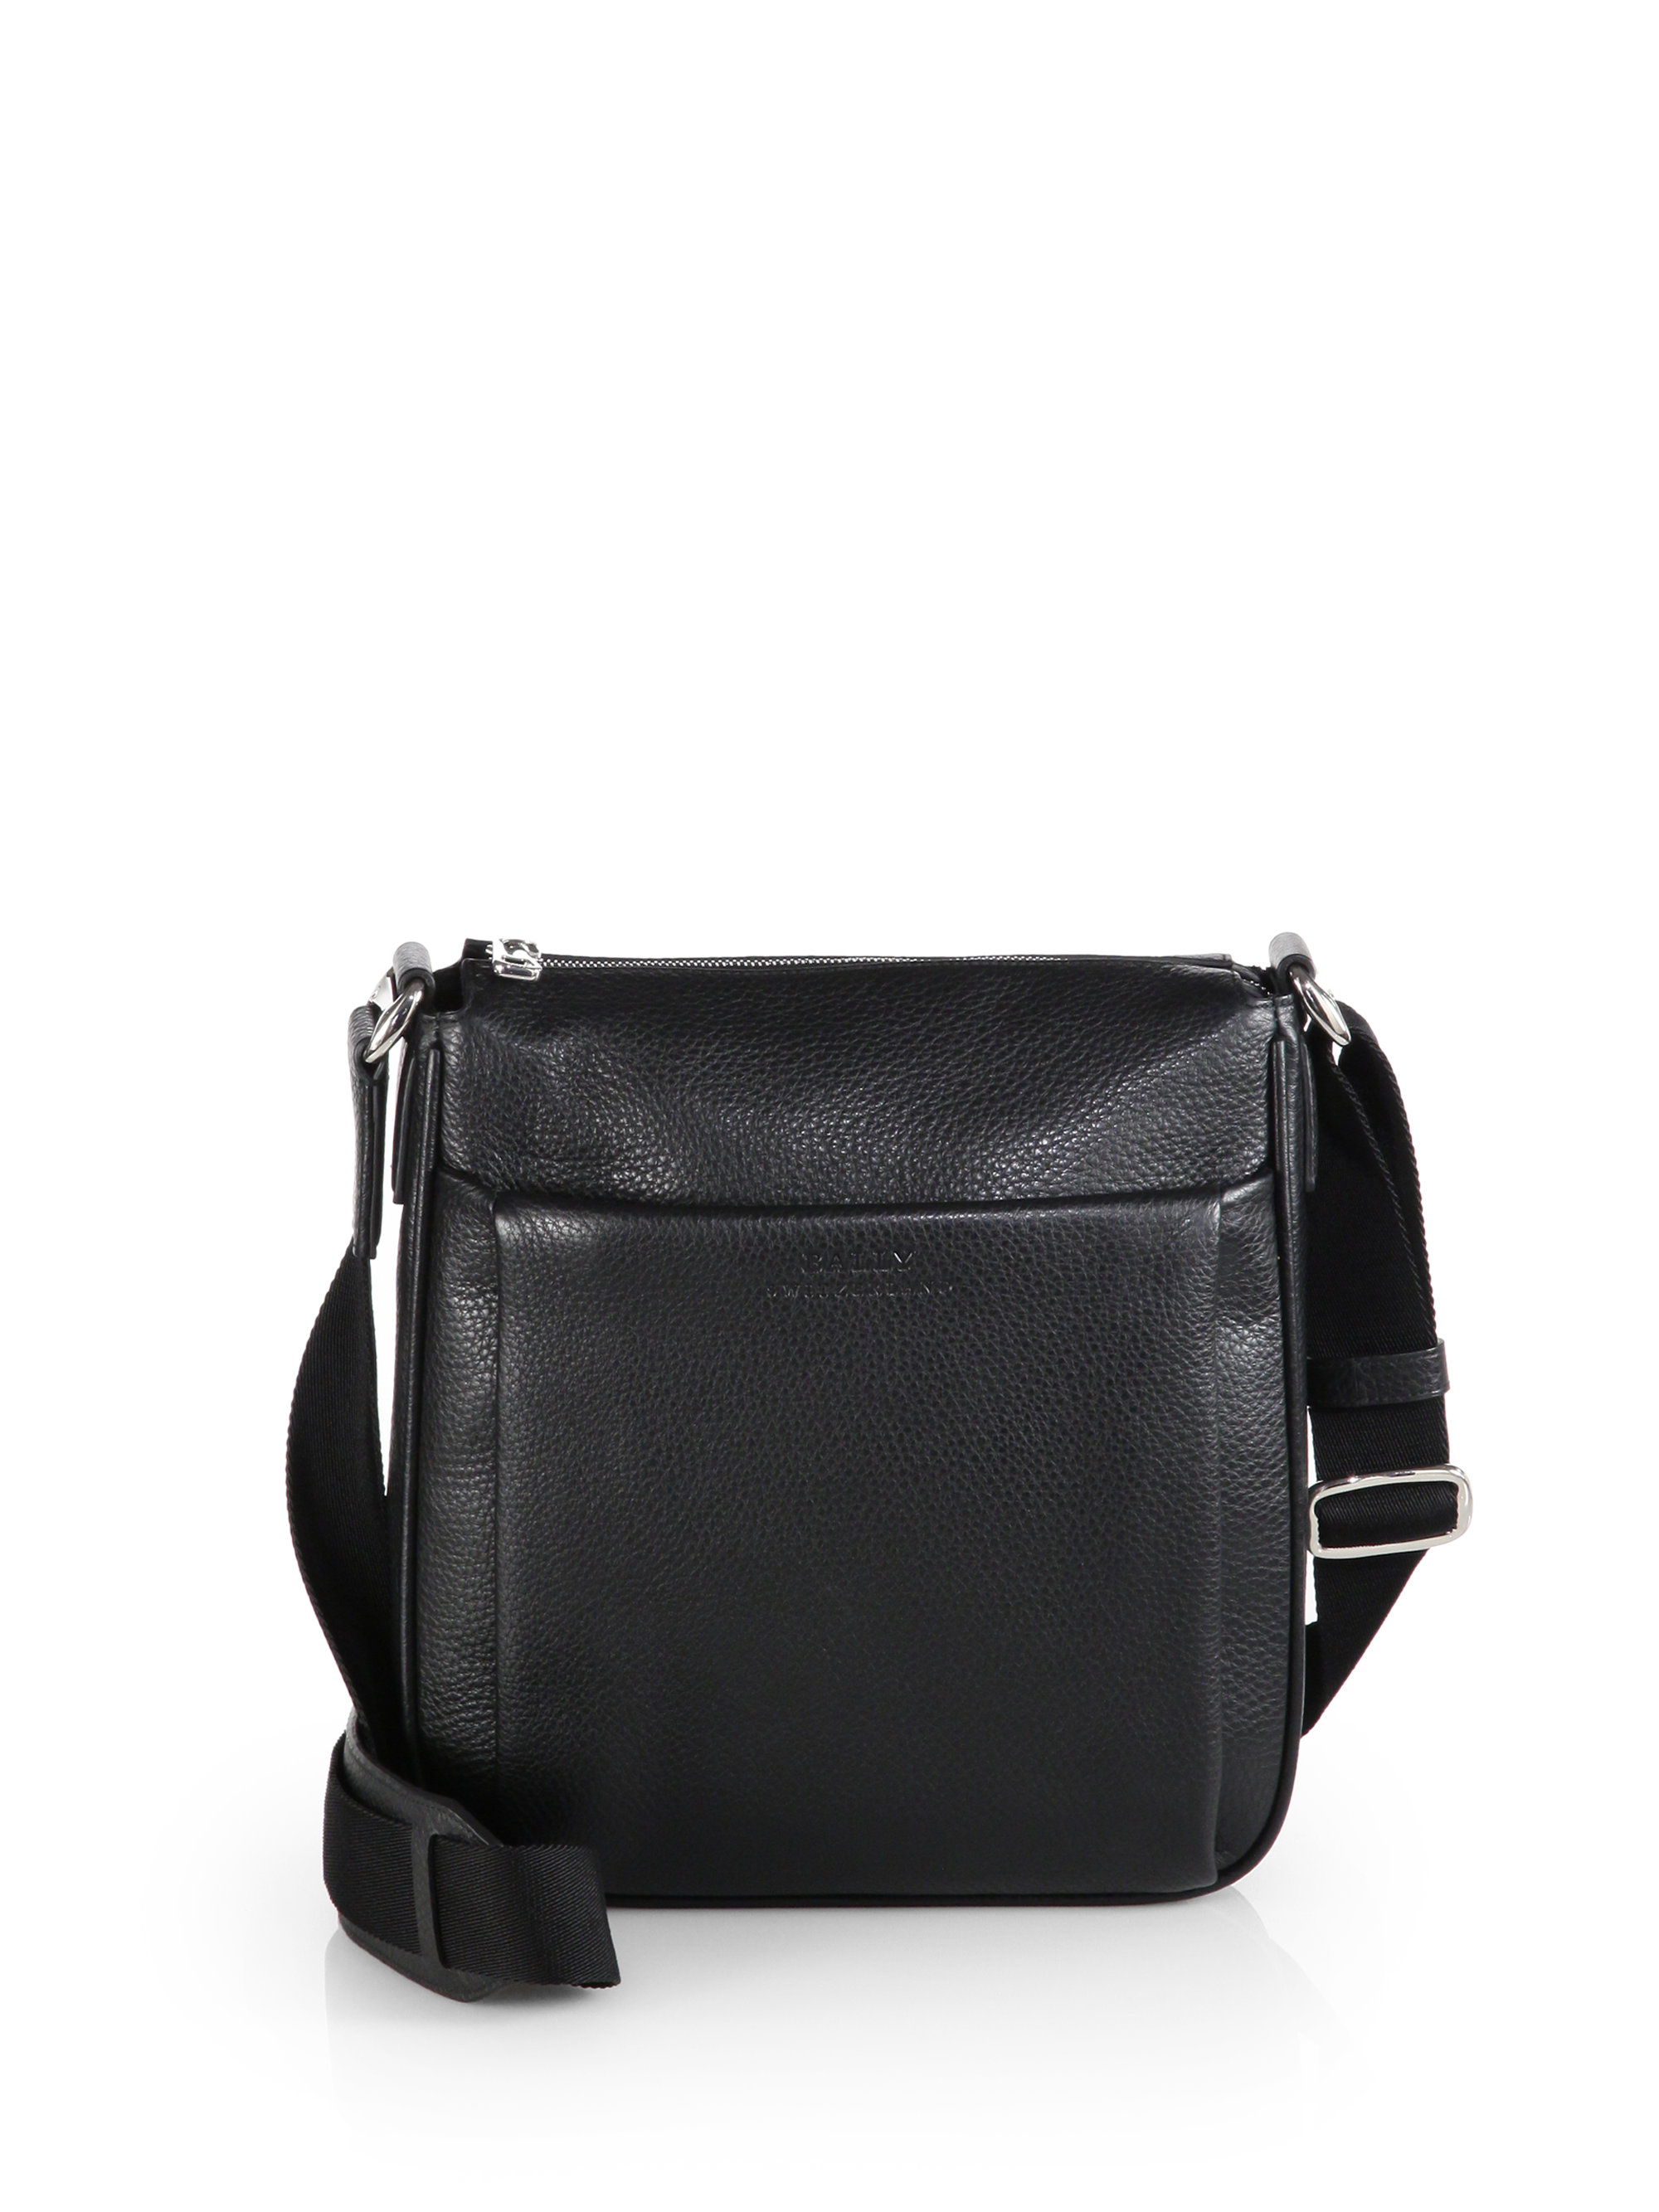 Bally Milano Leather Crossbody Bag In Black For Men Lyst